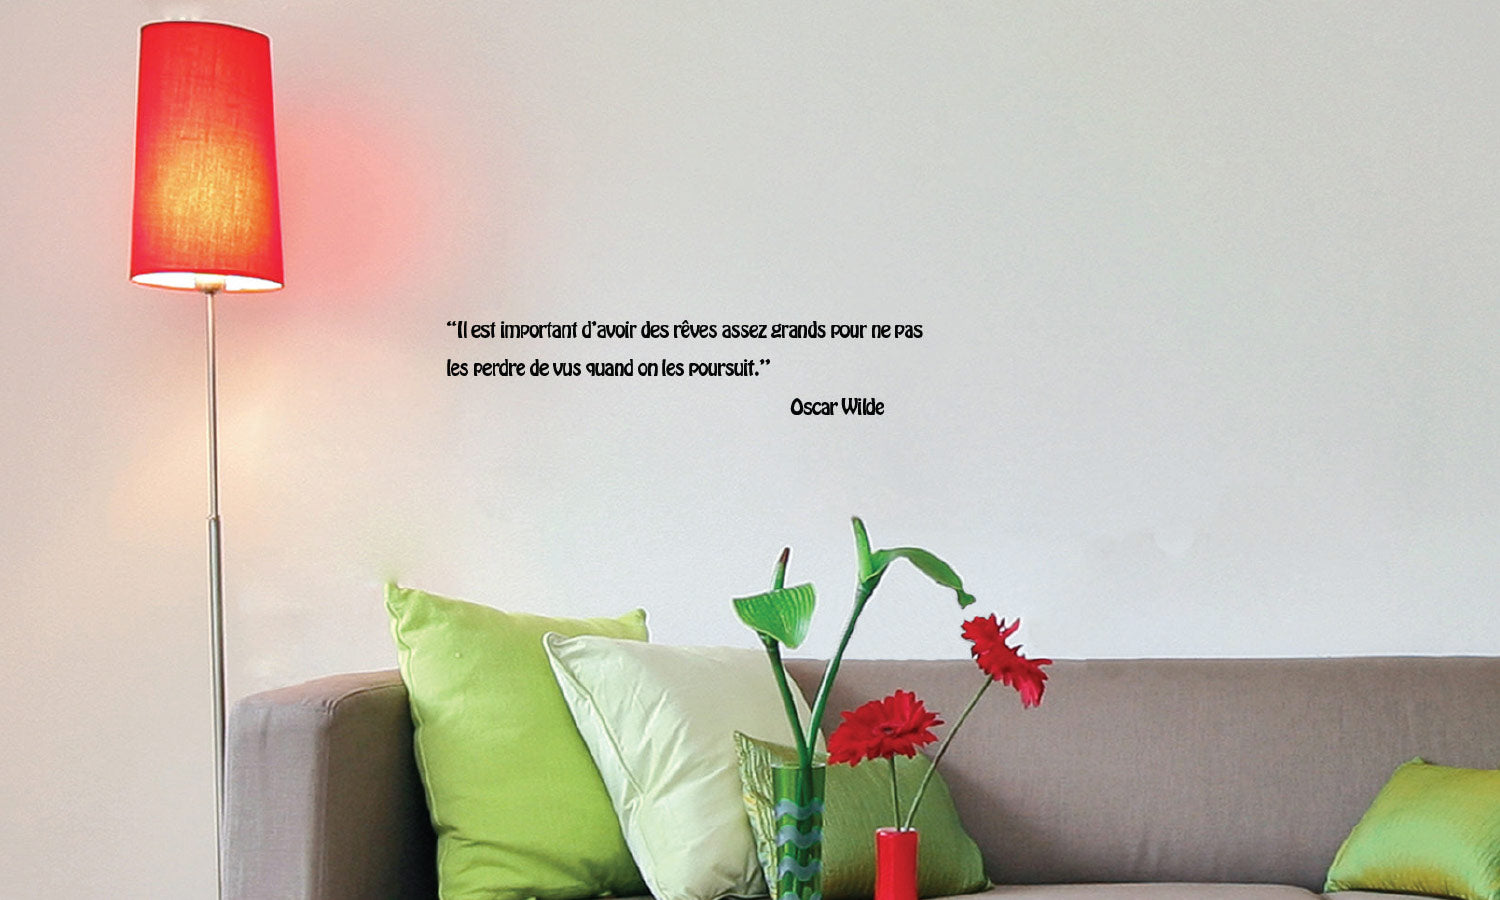 Wall stickers  - DWS010